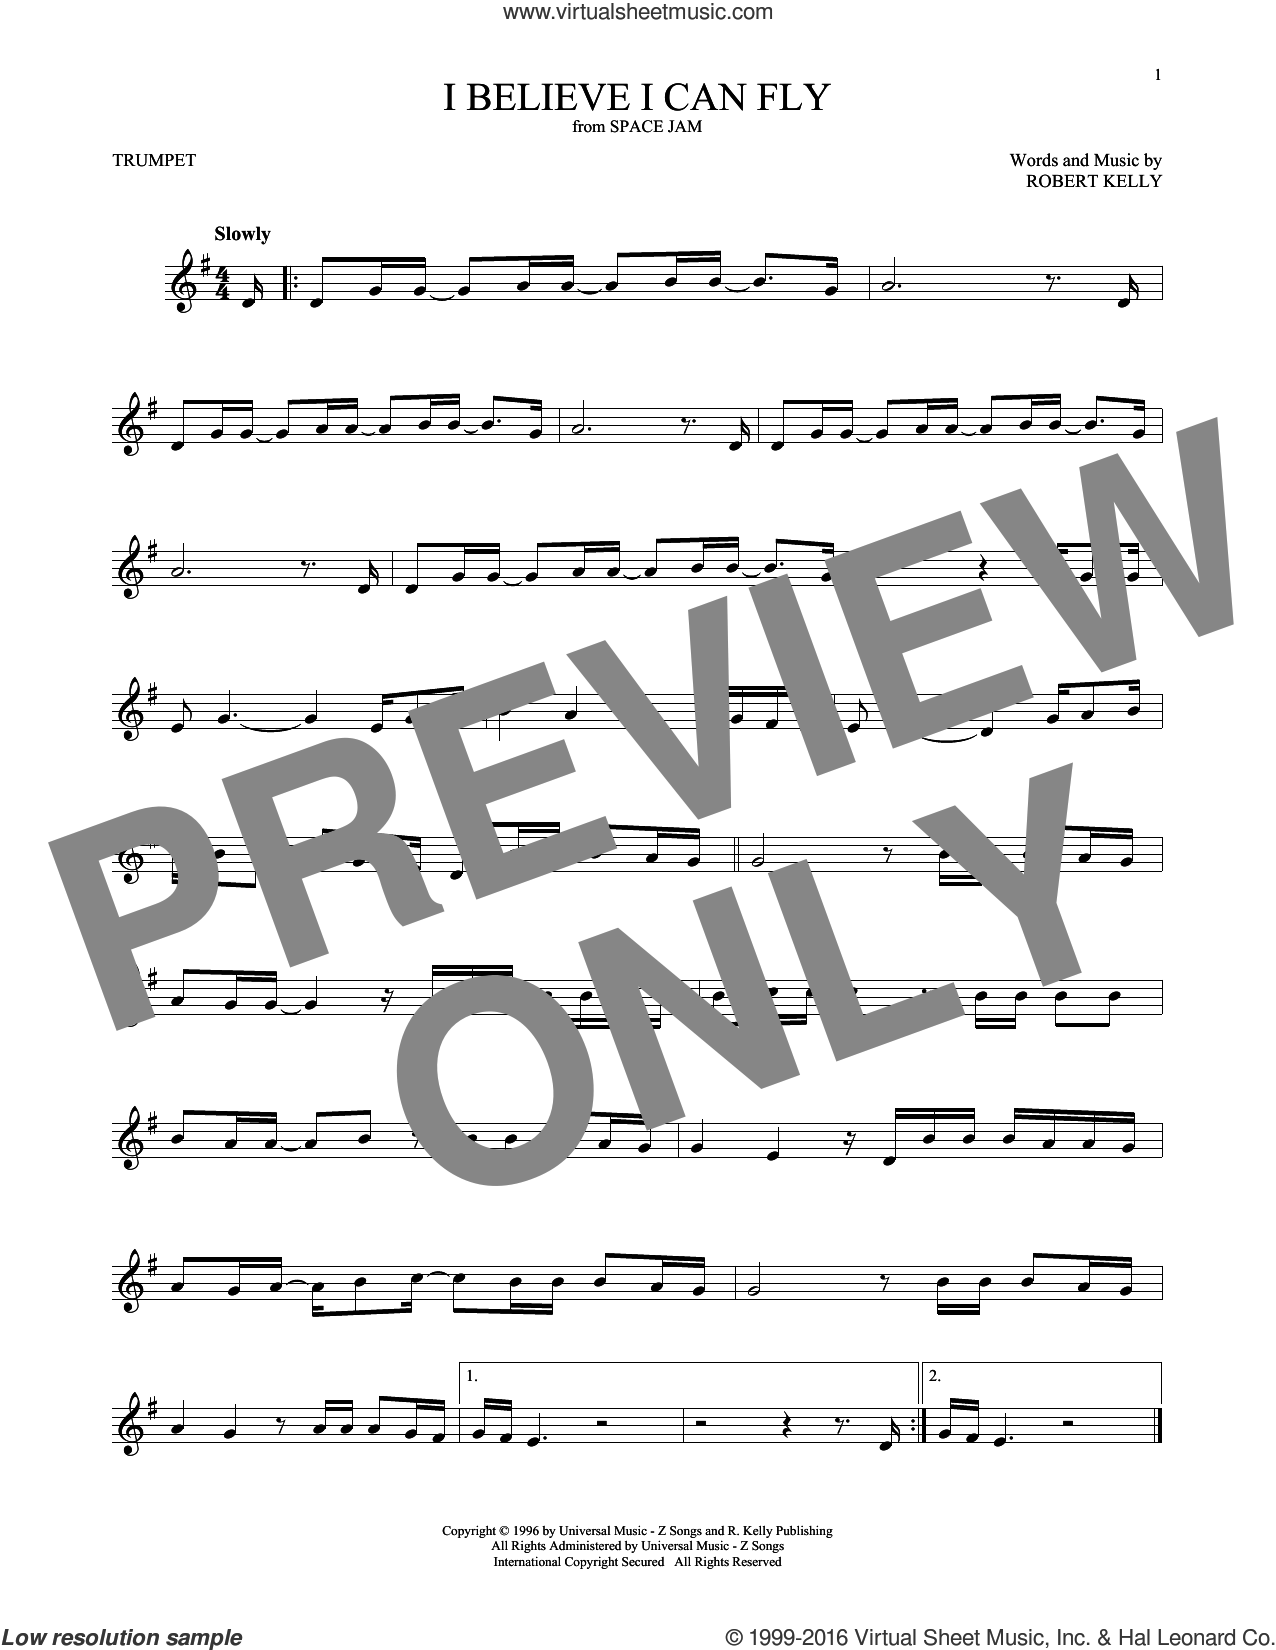 I Believe I Can Fly sheet music for trumpet solo by Robert Kelly. Score Image Preview.